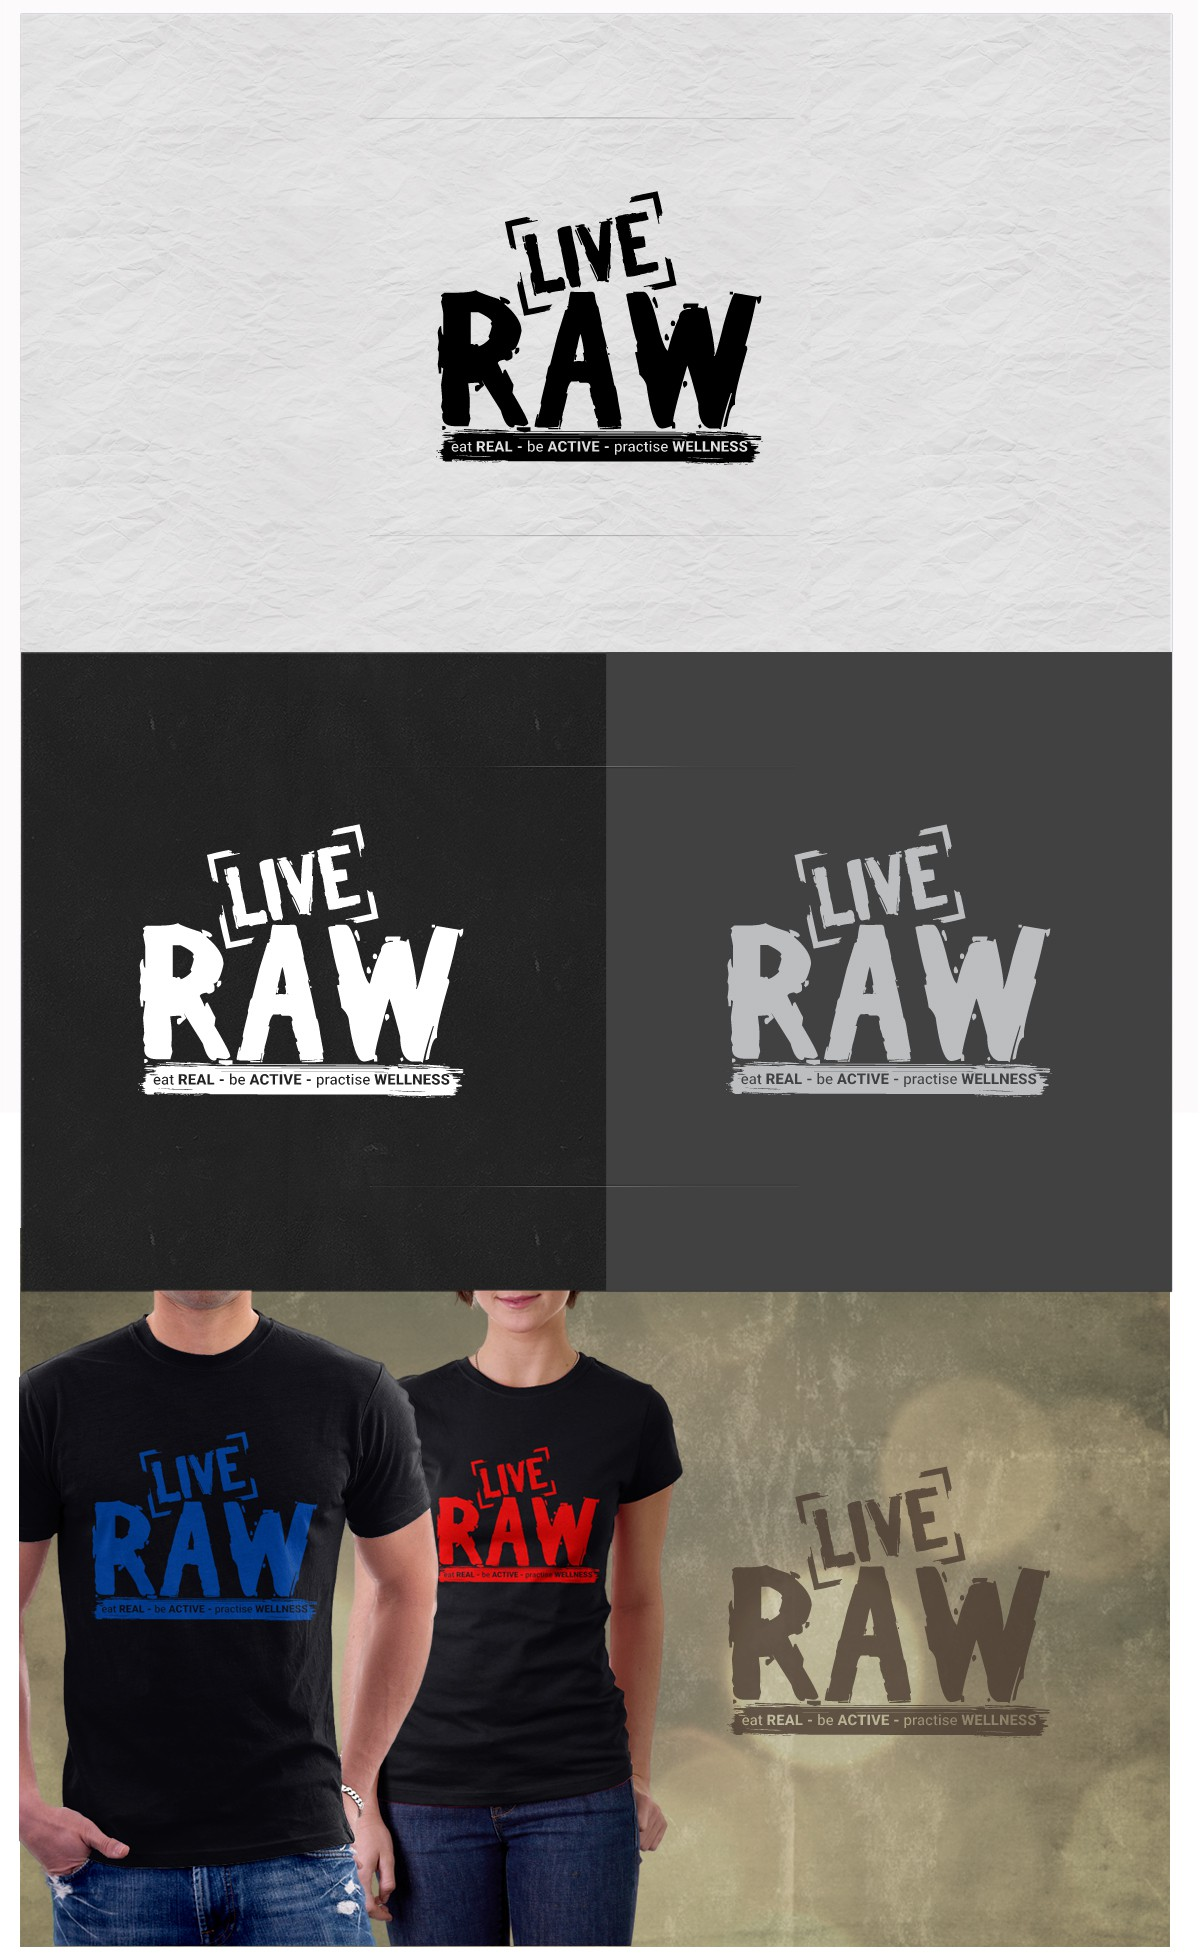 Edgy, gritty logo design for Live RAW!